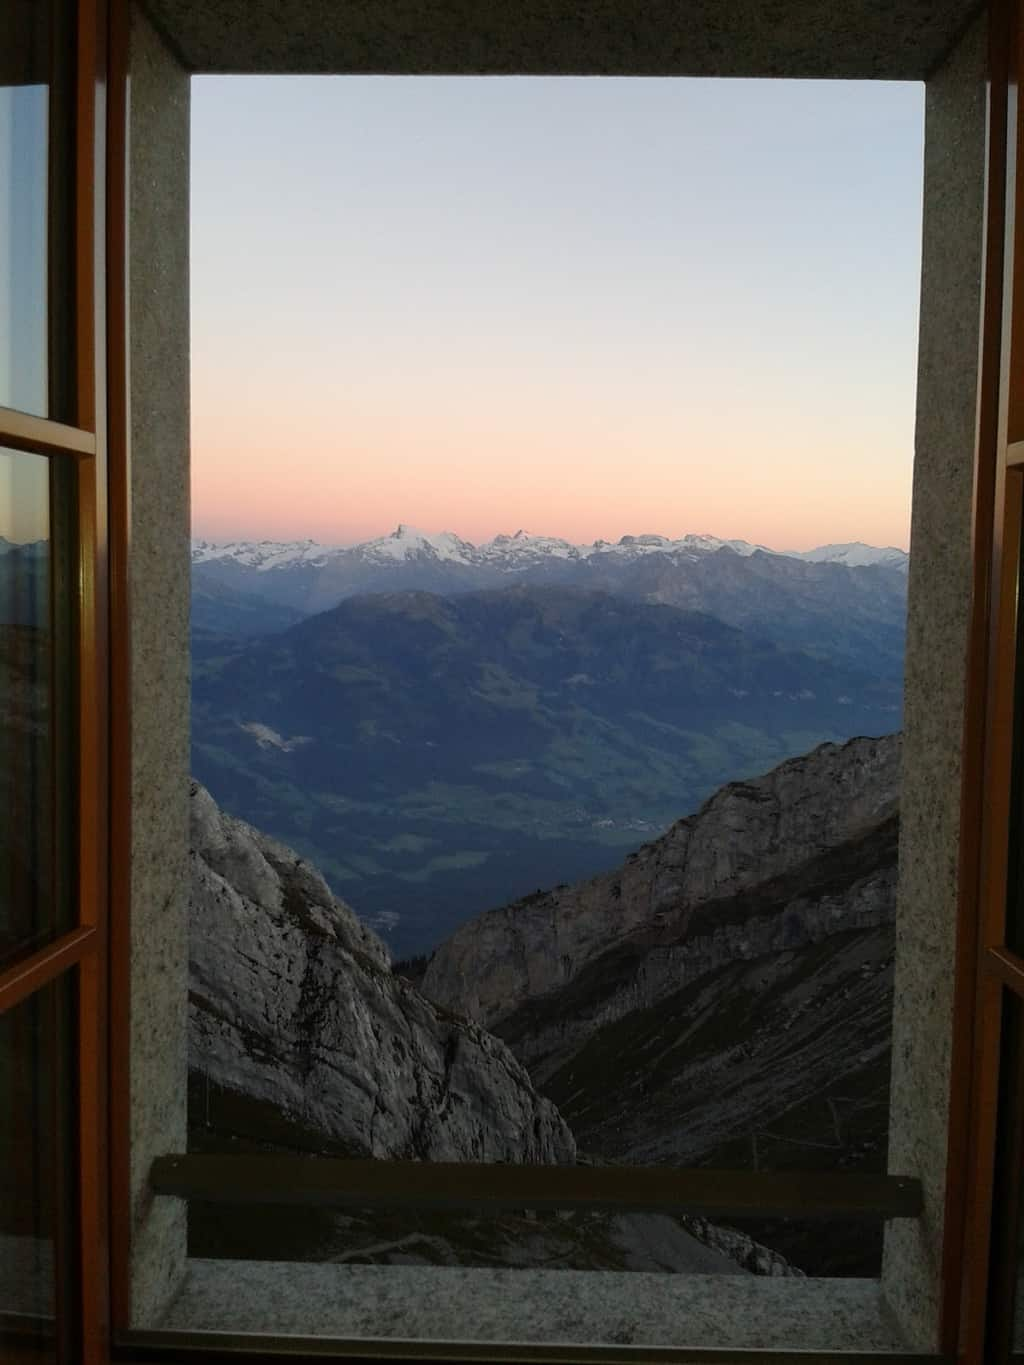 Mount Pilatus Review